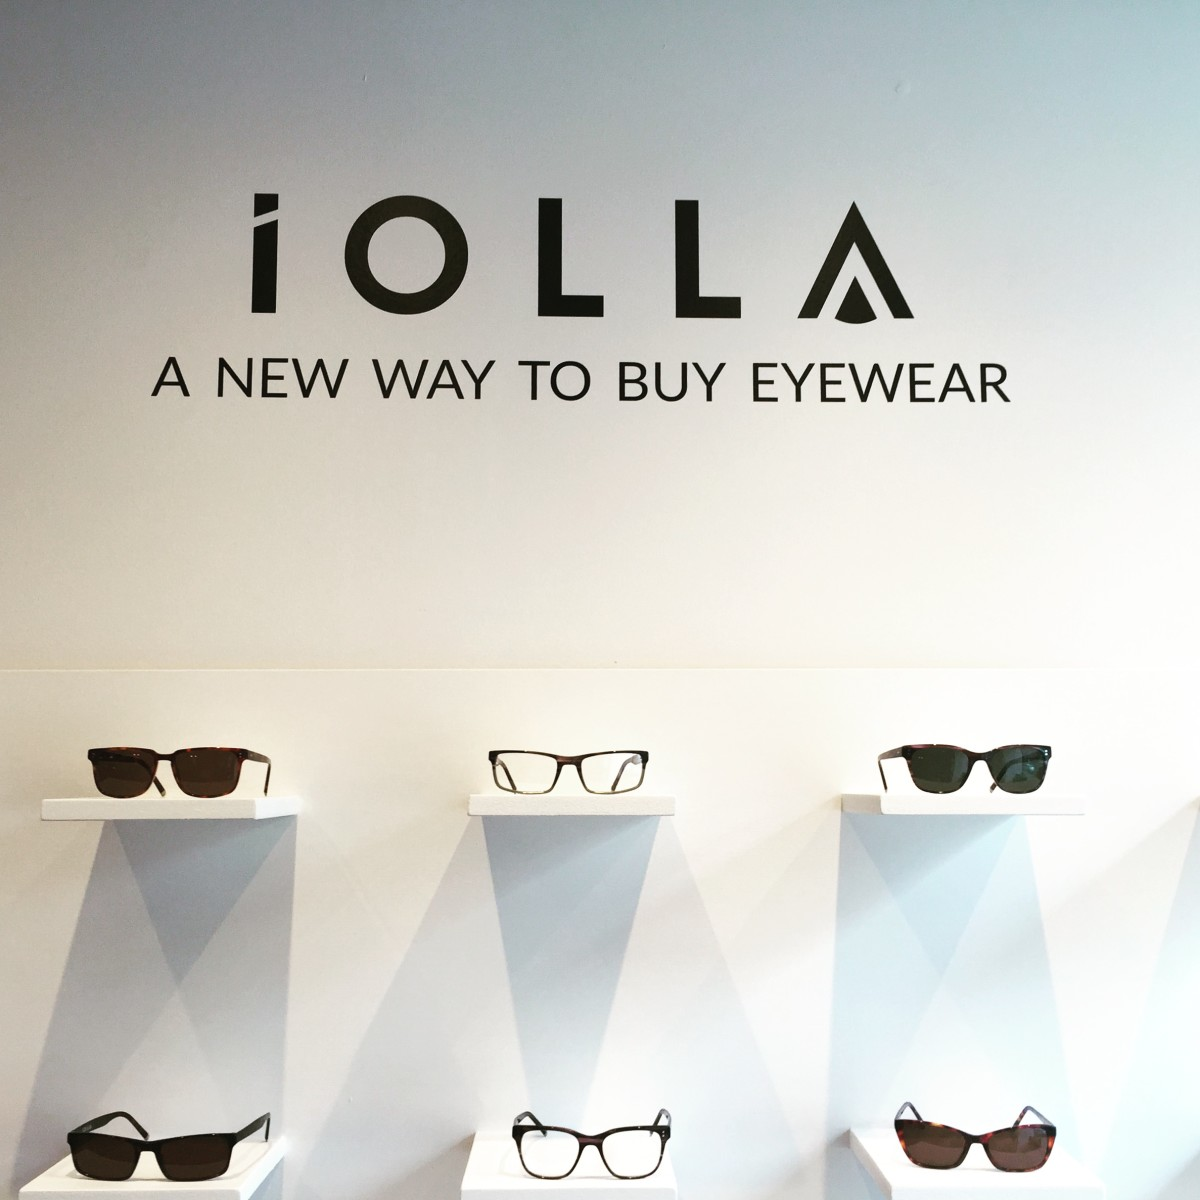 last year's looks: see with iolla;